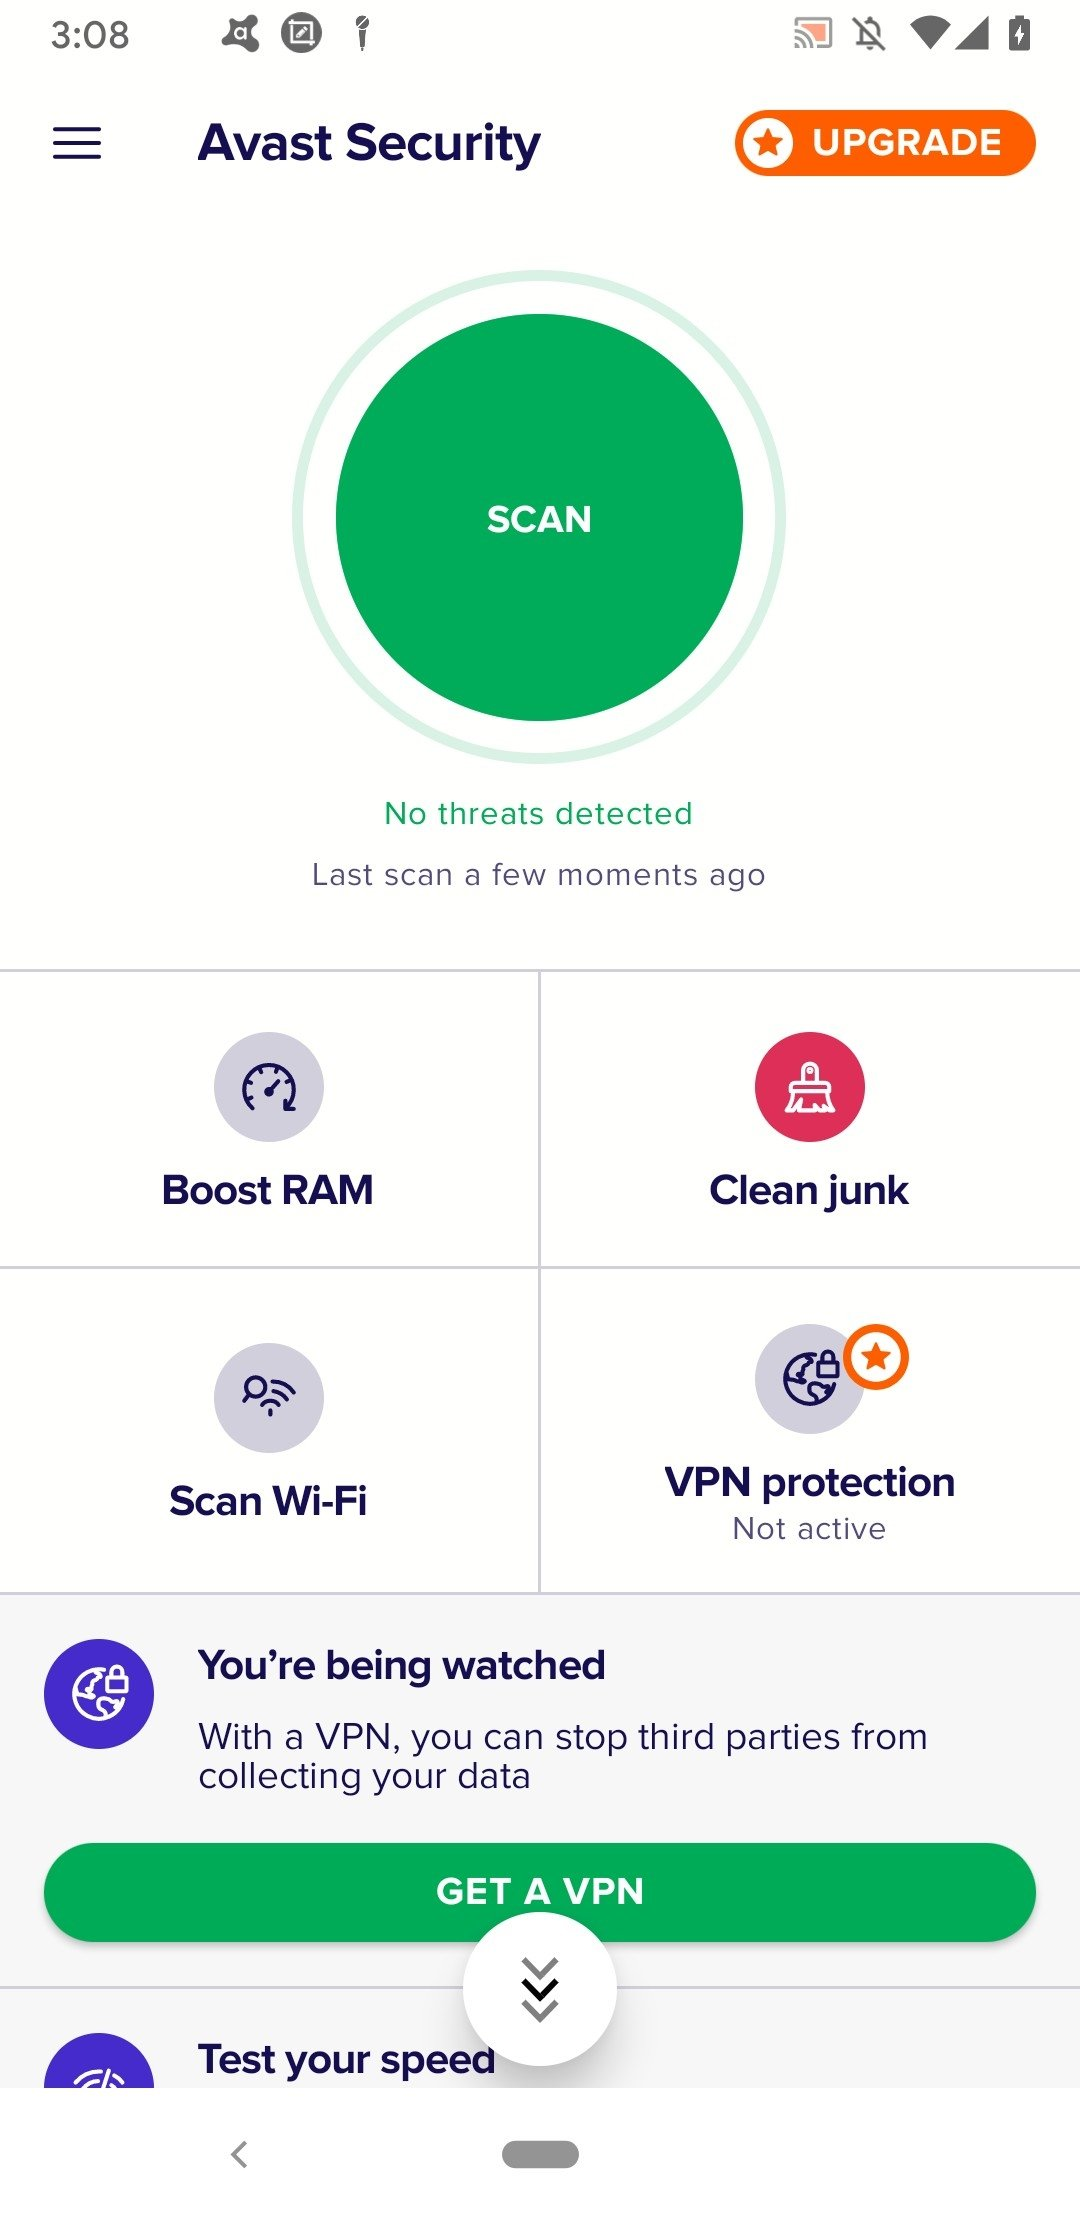 Avast Mobile Security & Antivirus 6.32.1 - Descargar para Android APK Gratis